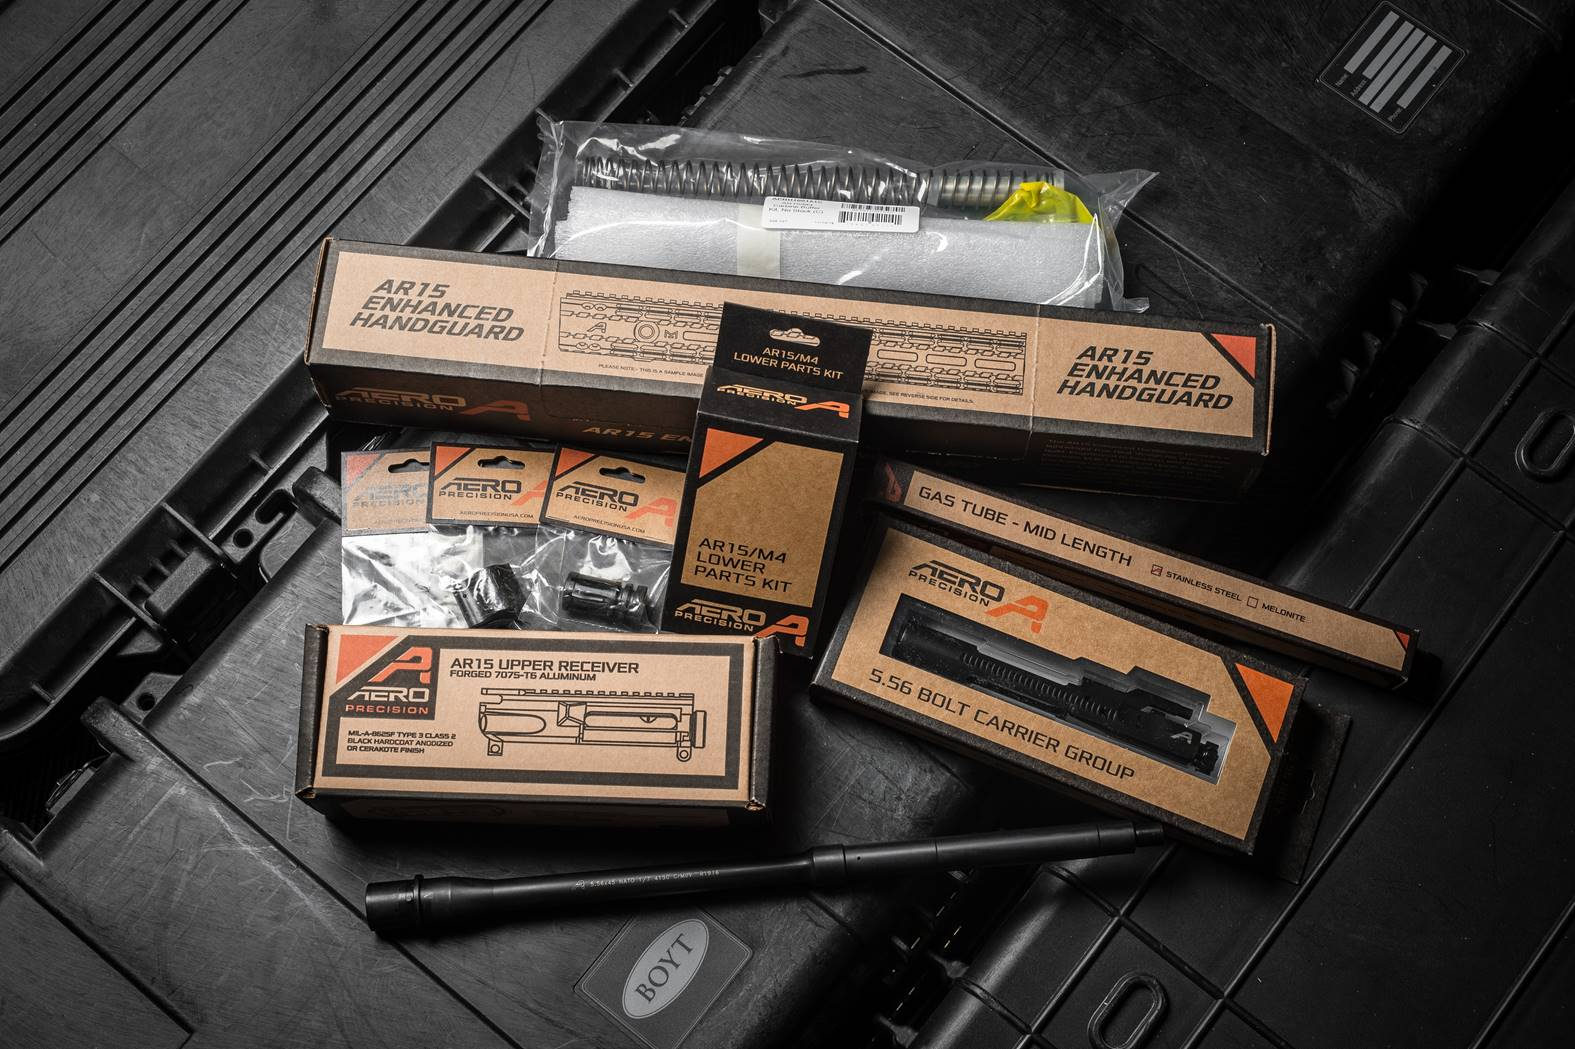 Aero Precision Rifle Build Kit - Every Part Retail Packaged - Optional 80%  Lower and Stock - $399 99